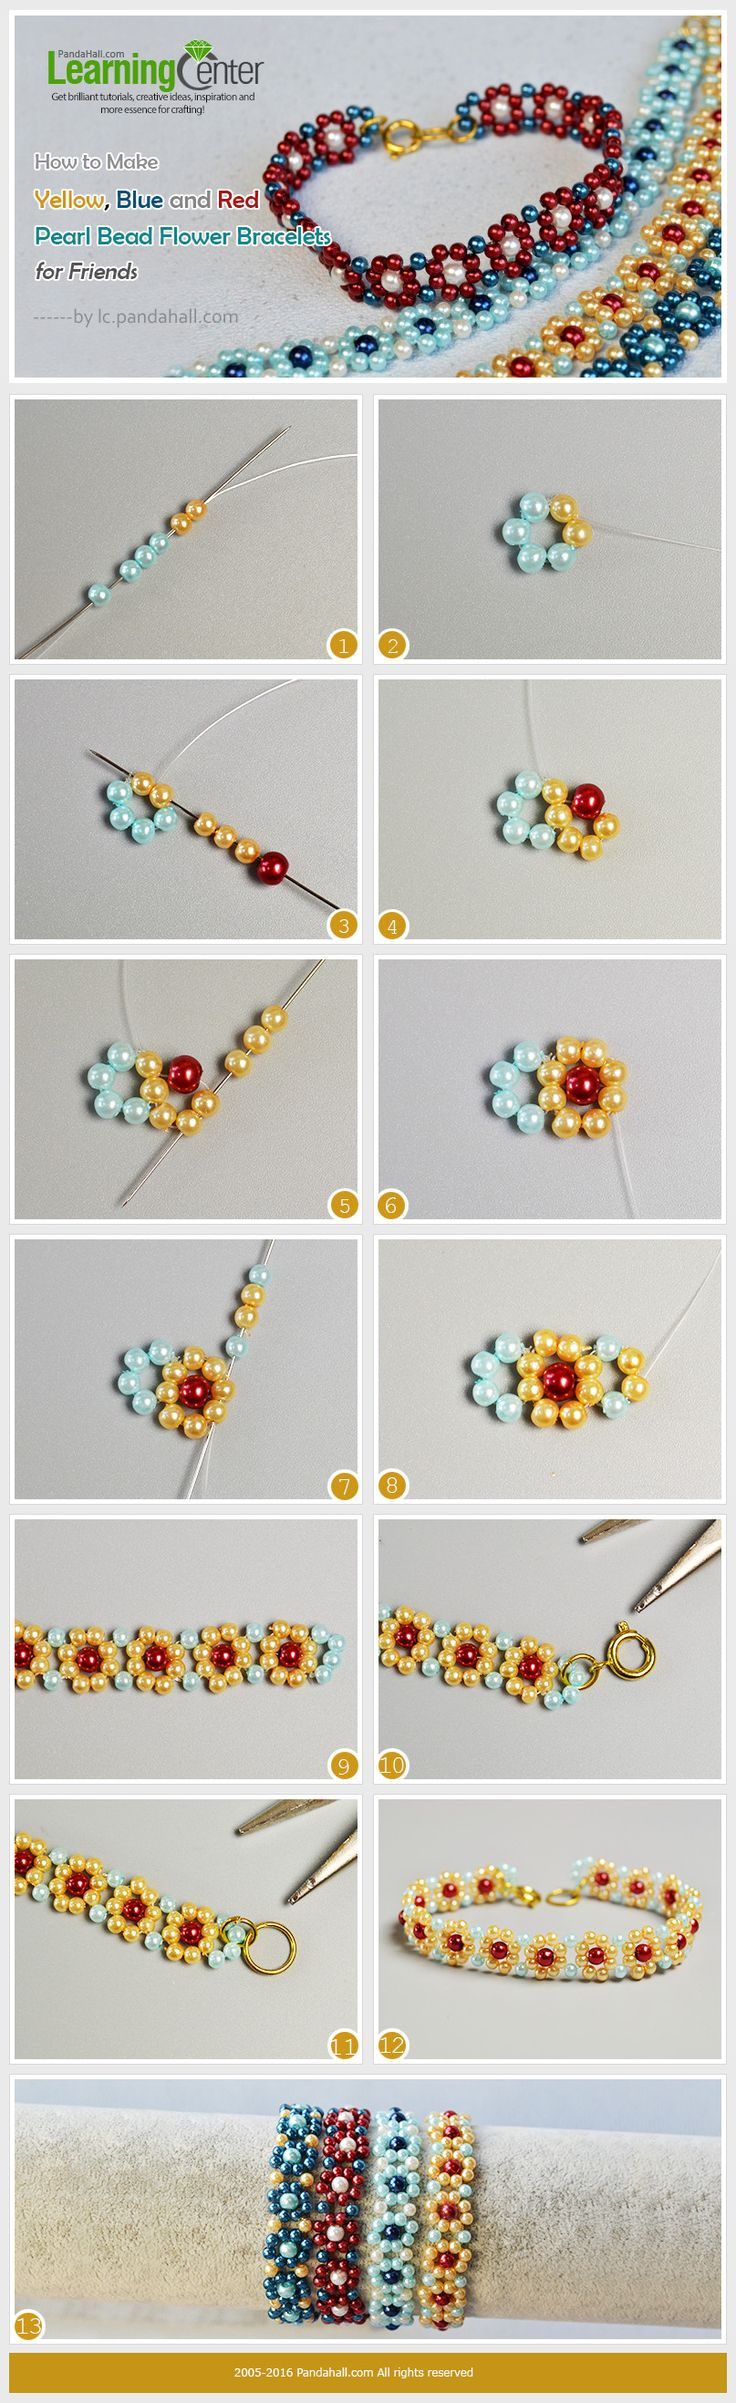 How to Make Pearl Bead Flower Bracelets This is a set of different colored pearl bead flower bracelets, you can make them just with some pearl beads and basic beading skills.